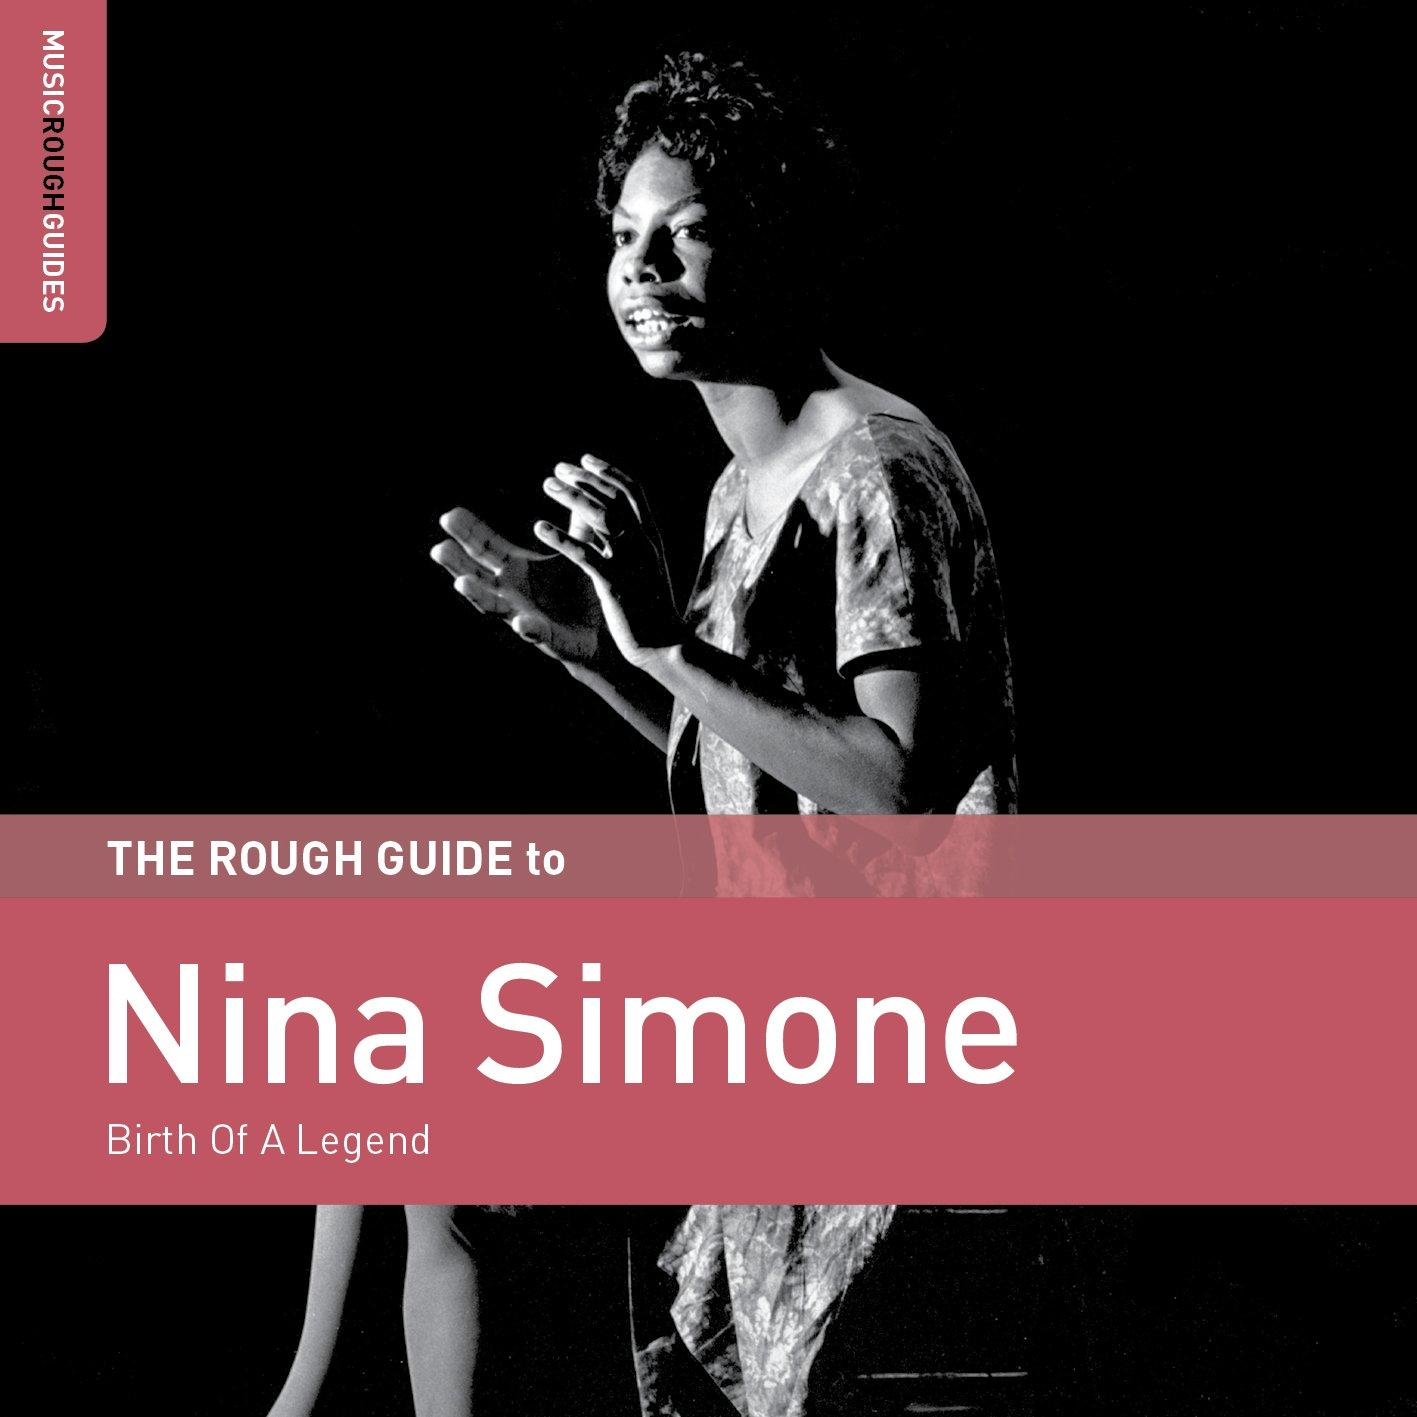 Nina Simone - Birth Of A Legend (Rough Guide To Nina Simone)